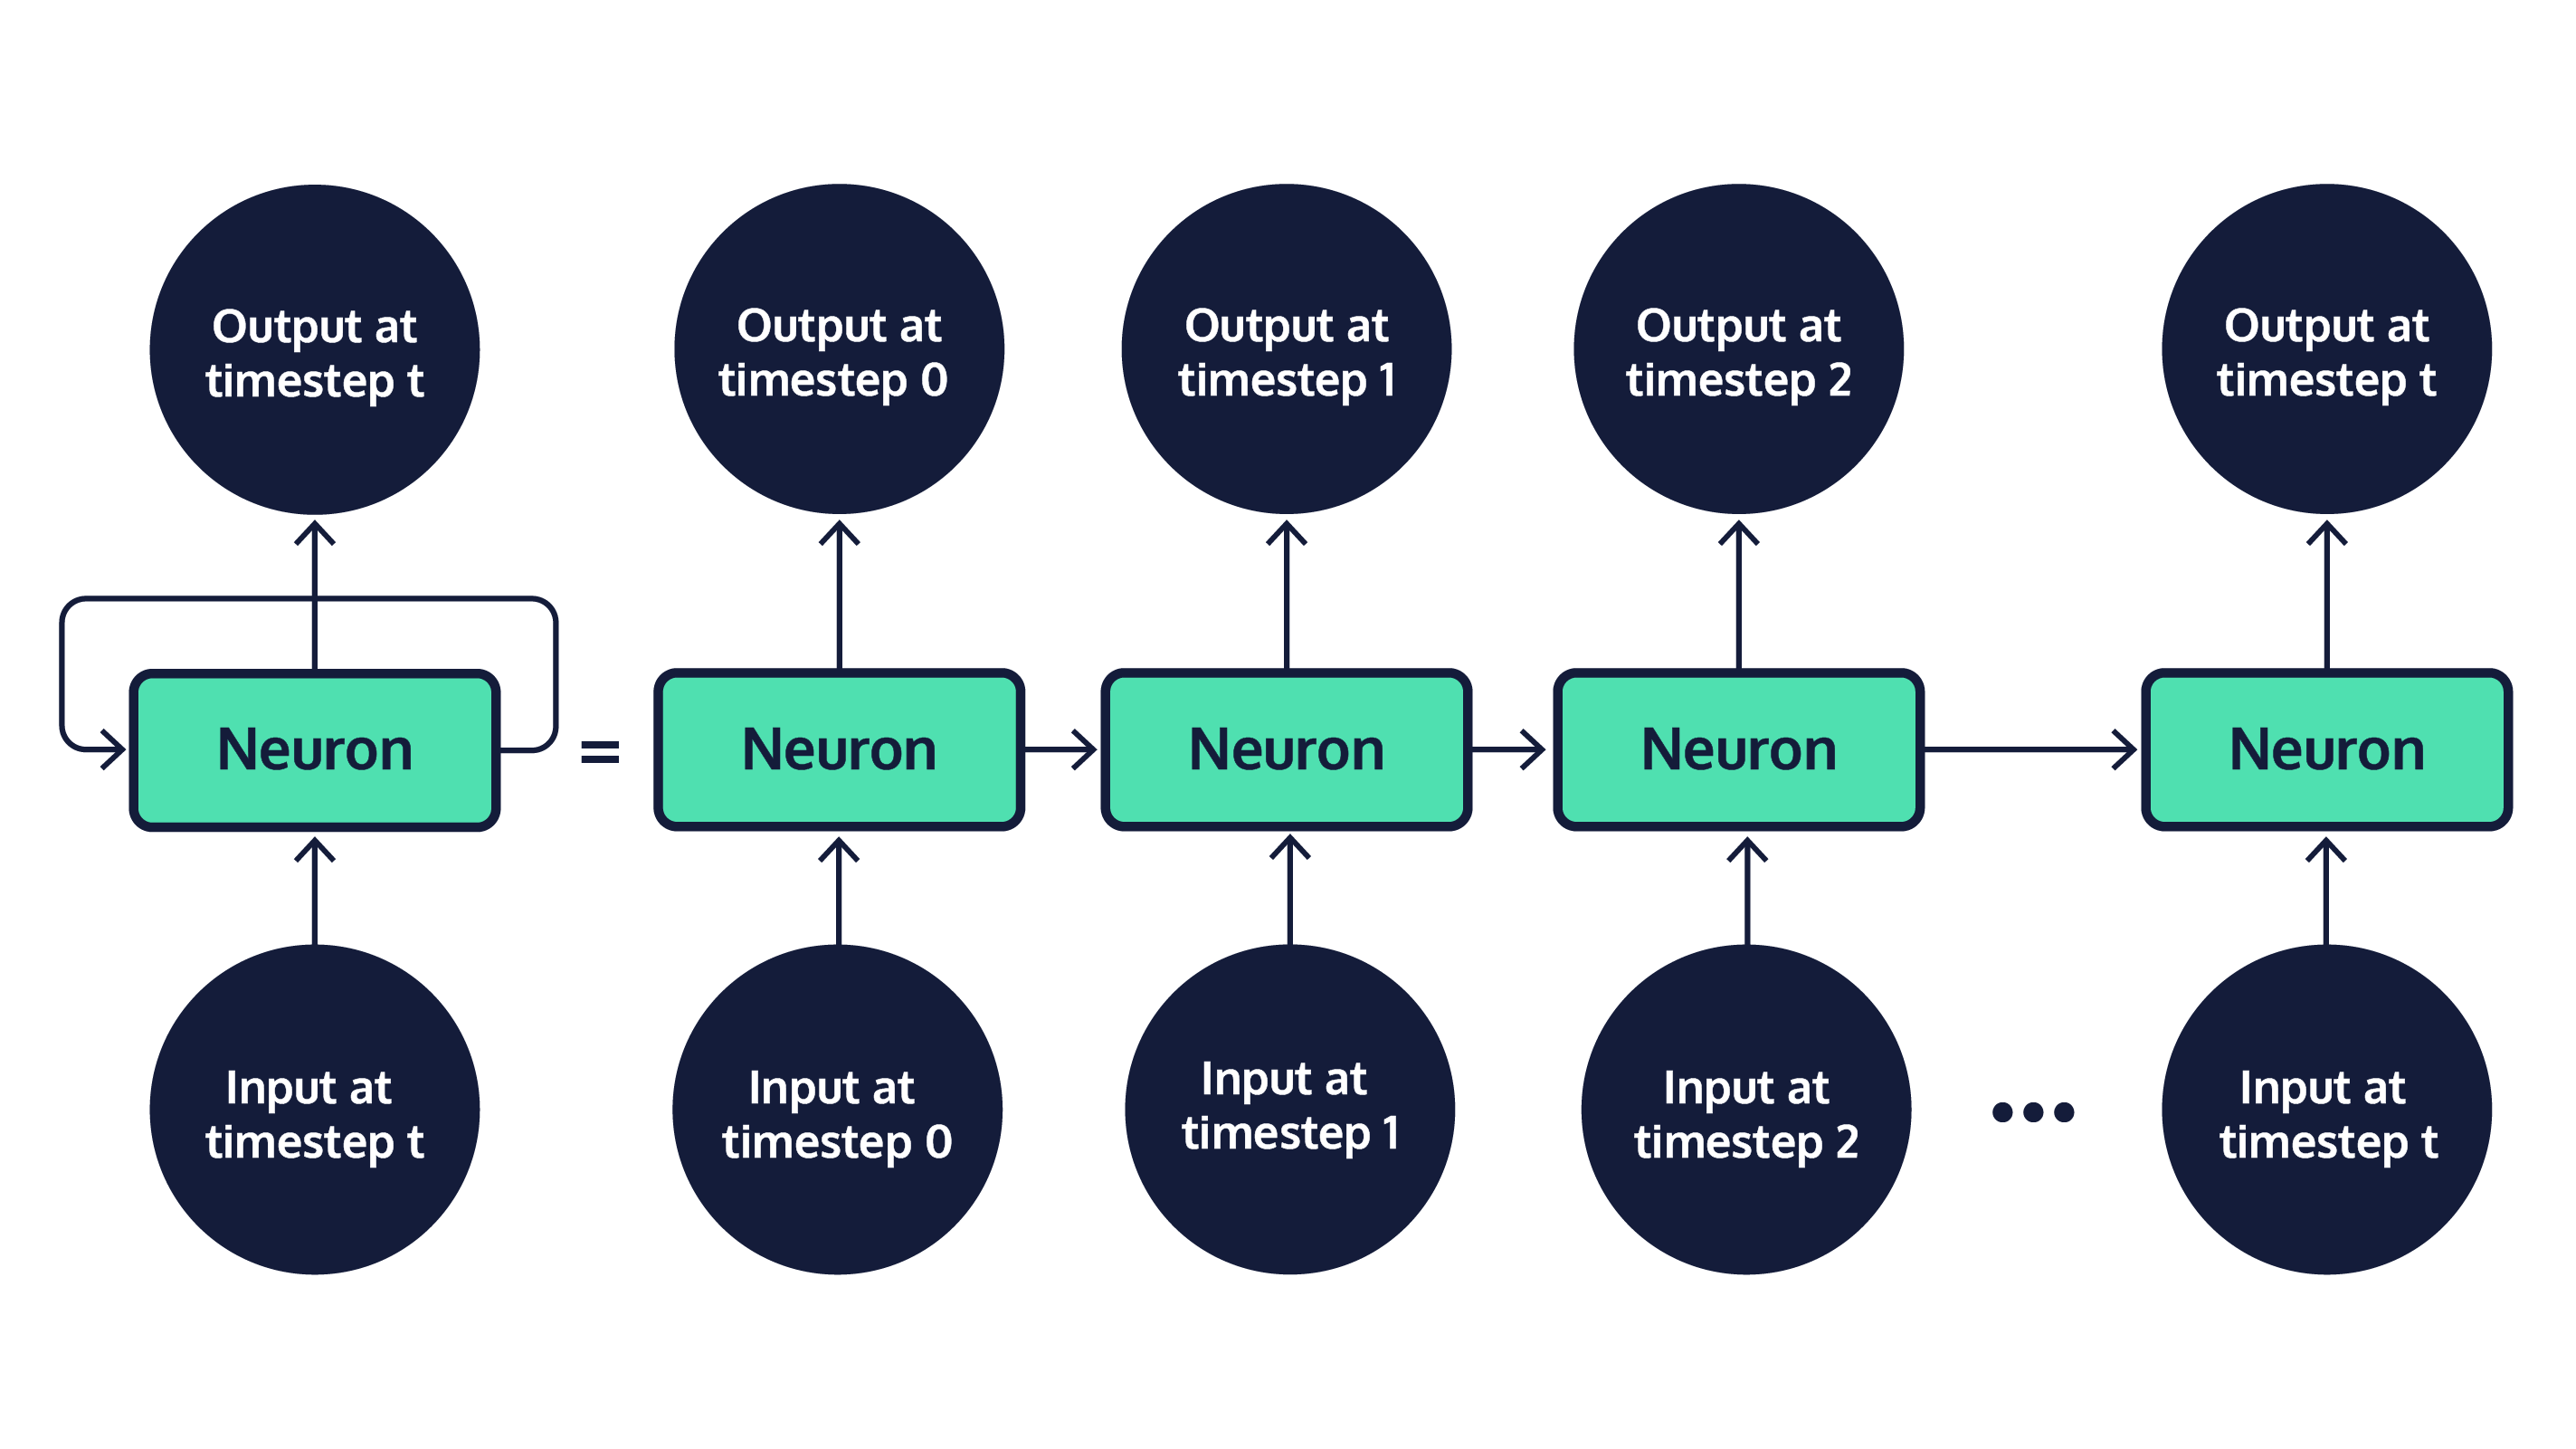 "A recurrent neural network. At each time step, an input feature is fed into the model. This feature updates the hidden state of the network, which then returns a new output. Information is passed across timesteps, so each new output is a function of the different previous inputs. We can visualize RNNs as a box with an arrow coming out and going back into it (representing the hidden state). We can also visualize an RNN as ""unrolled"": different boxes applied to each different timestep's input, with arrows moving left to right connecting each box."